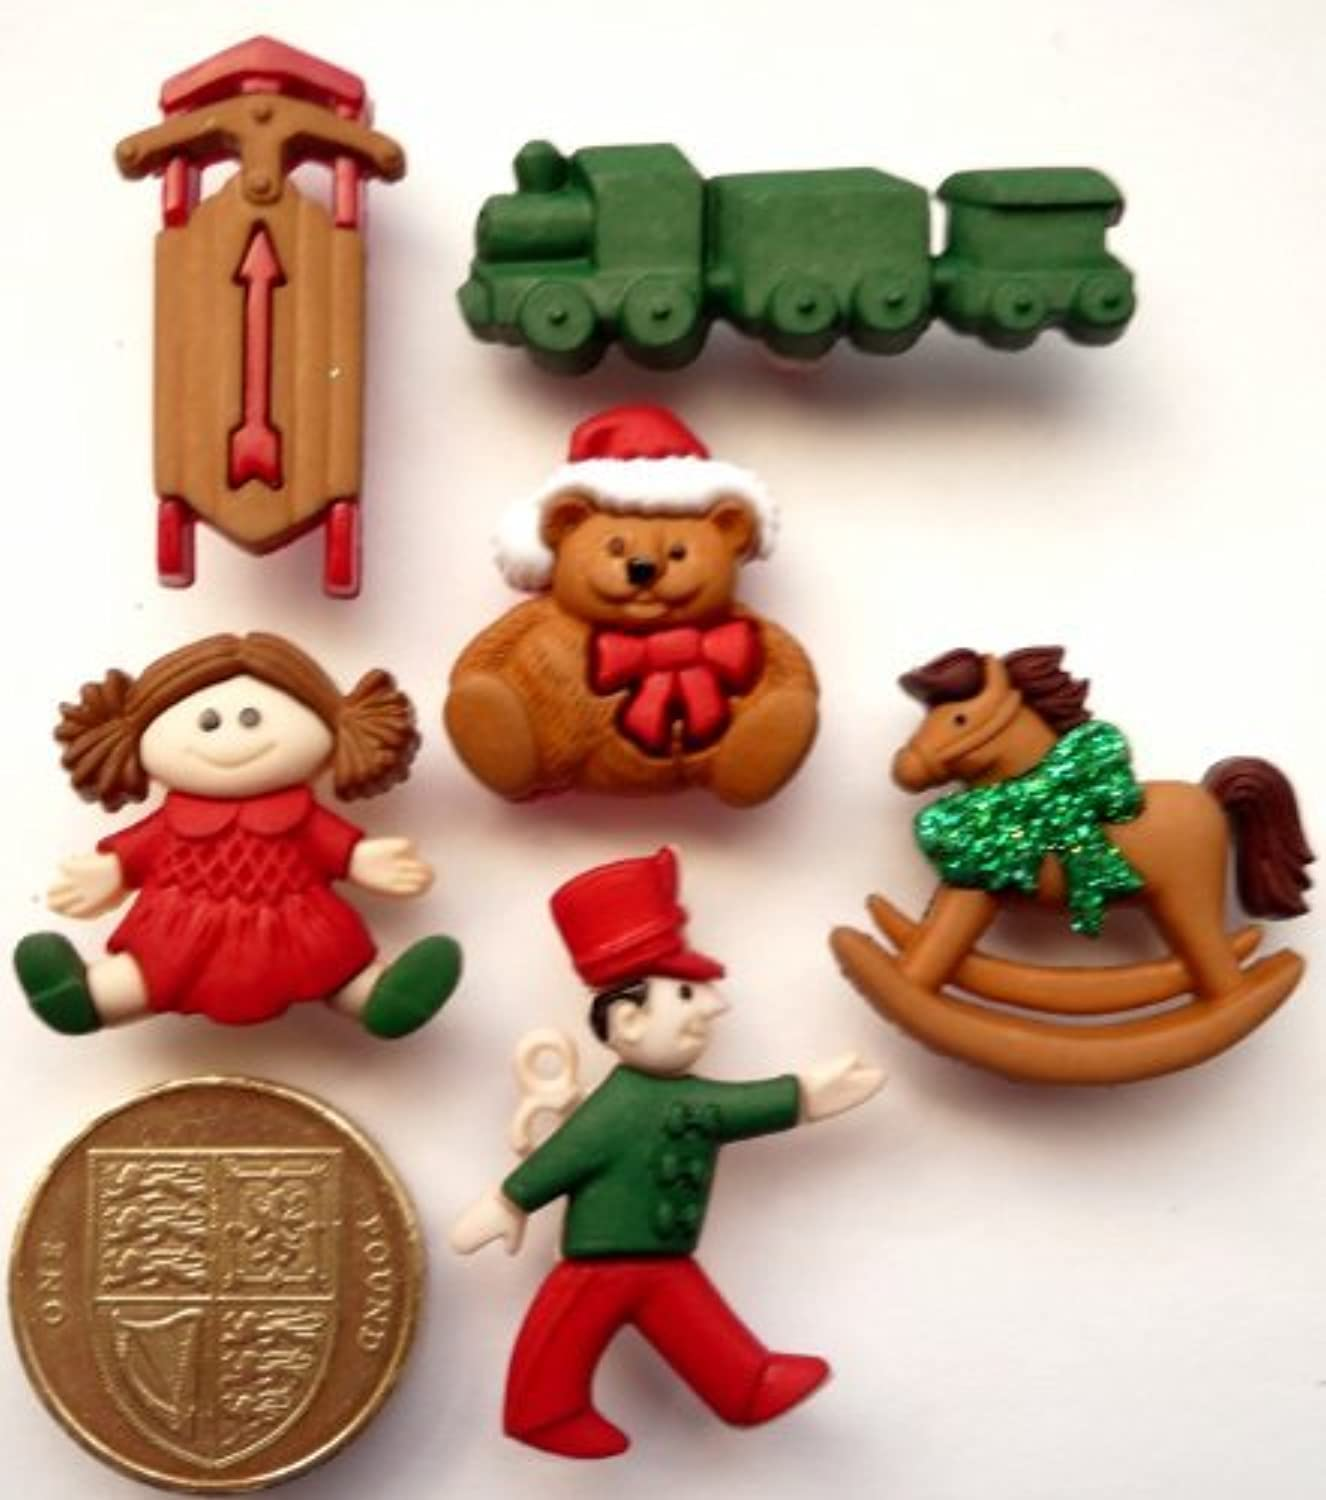 Christmas Toys - Novelty Craft Buttons & Embellishments by Dress It Up by Jesse James